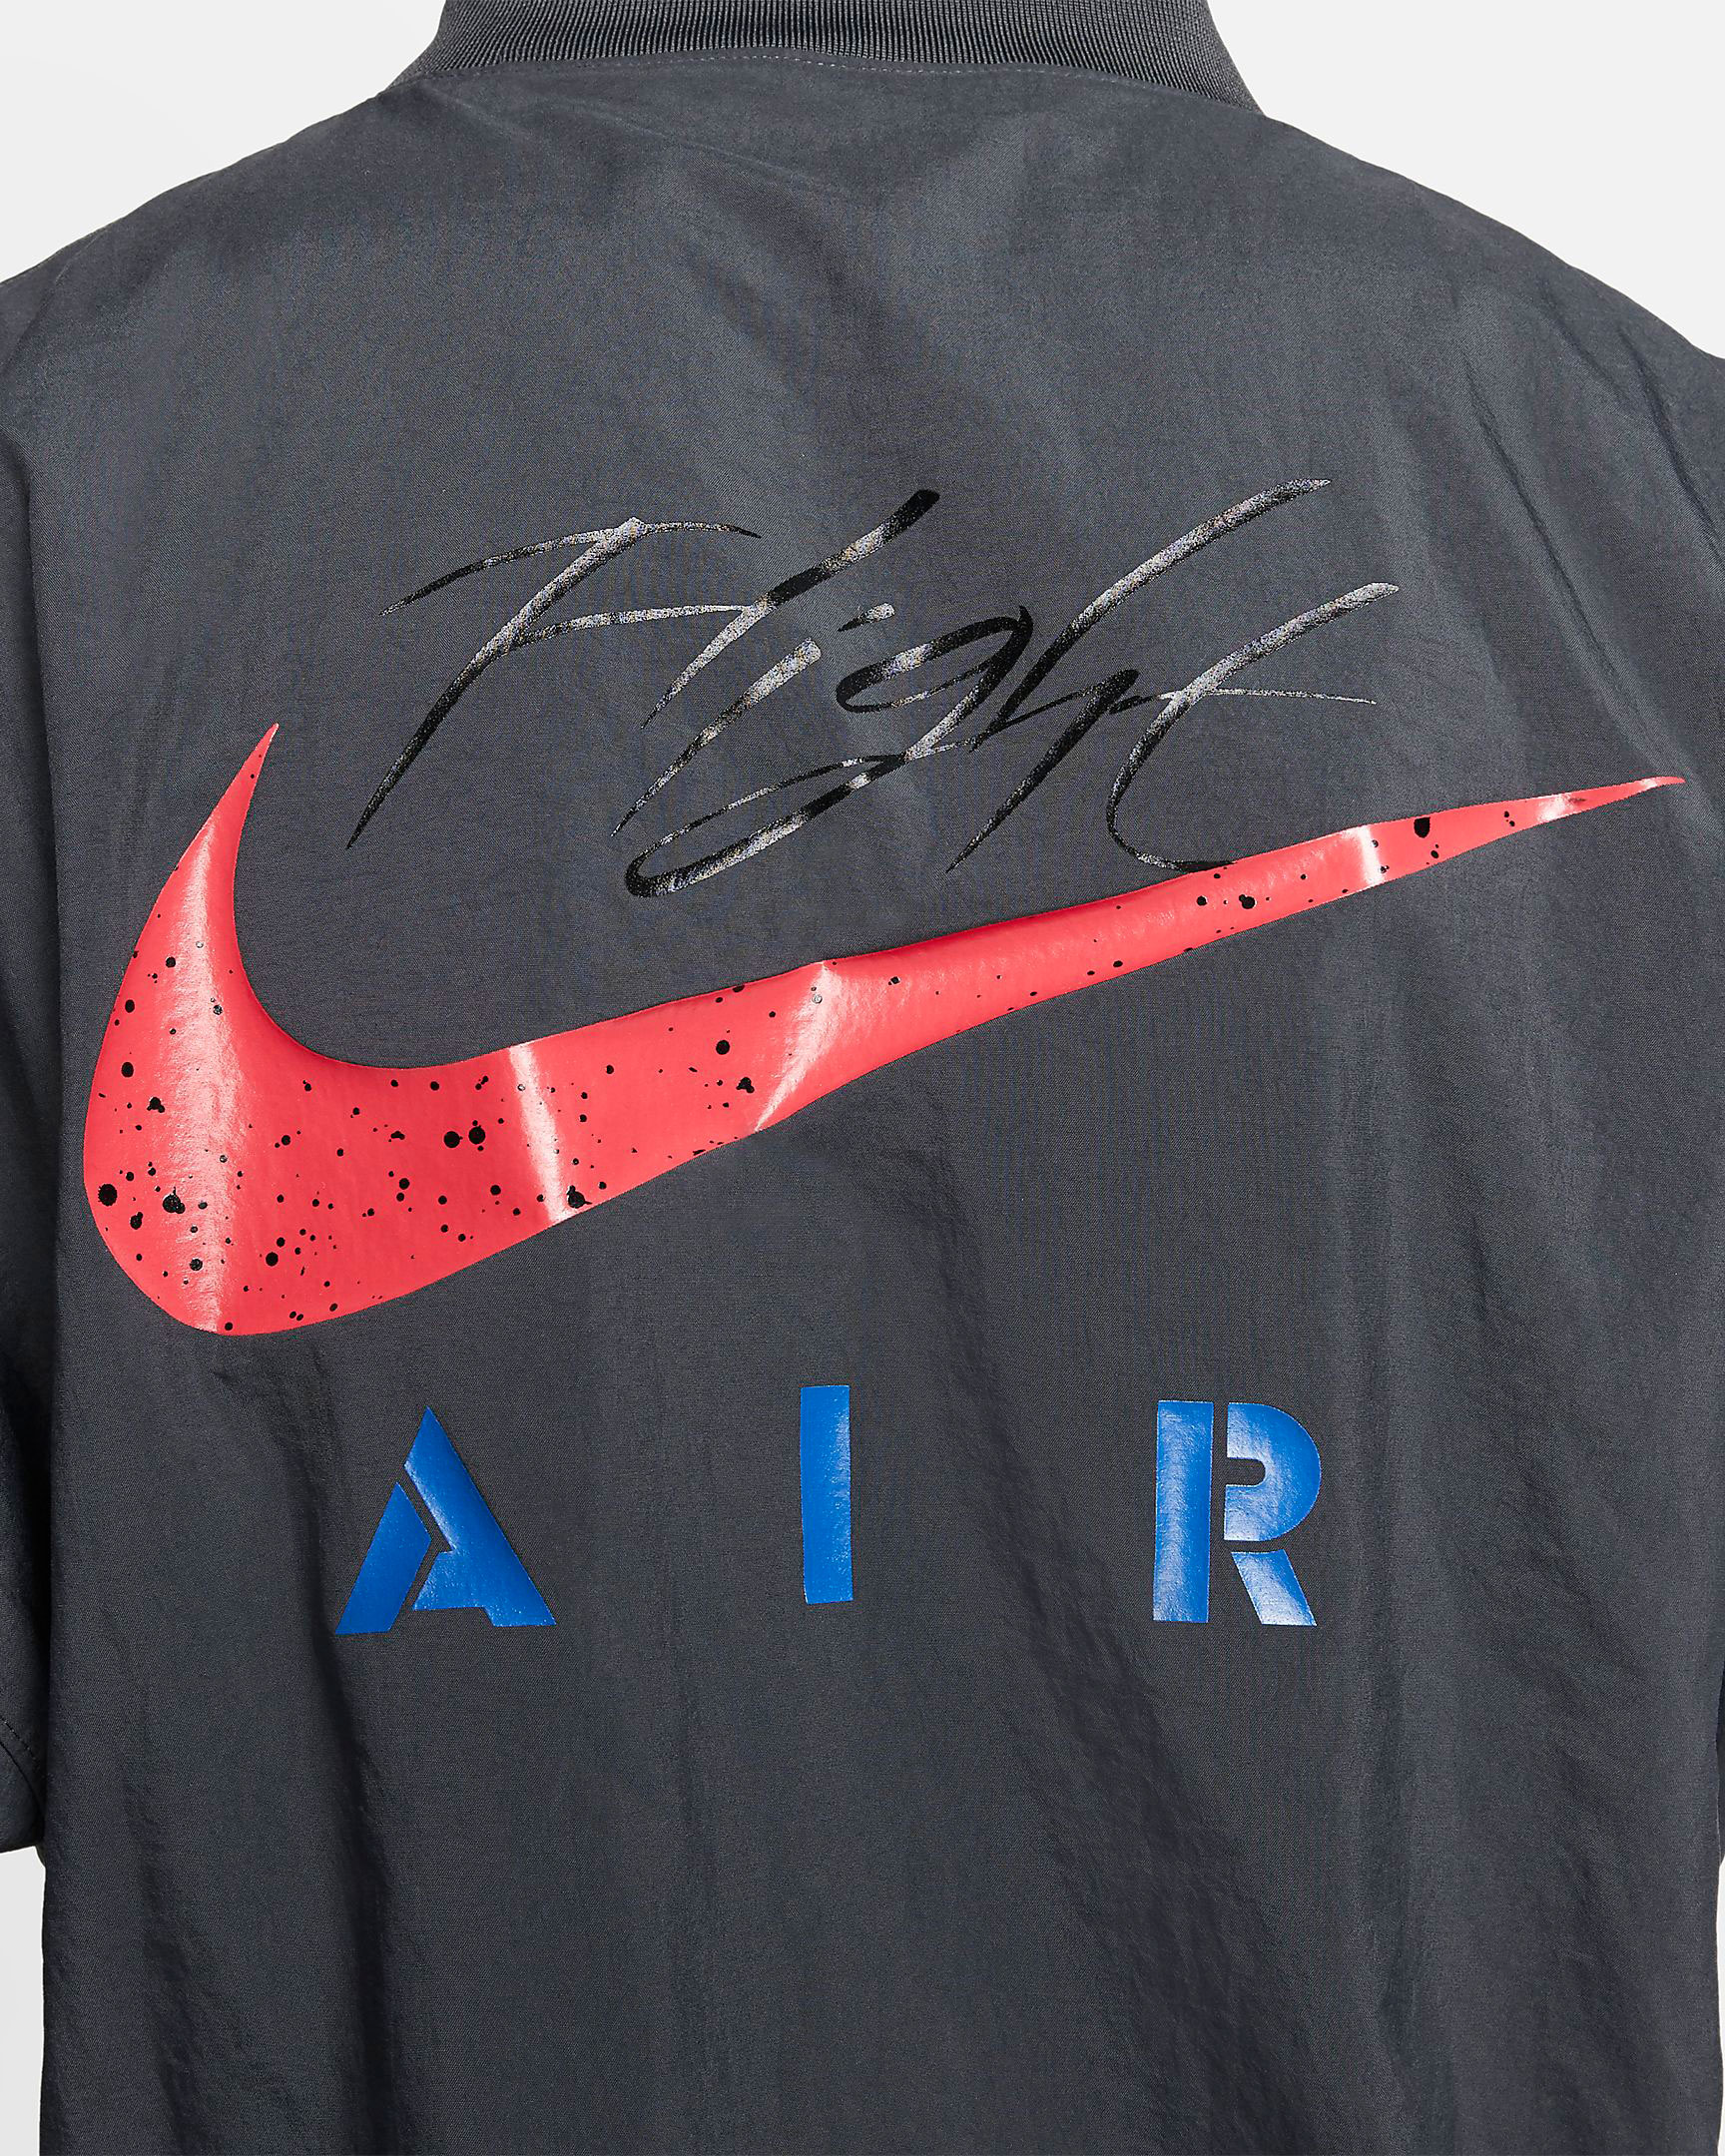 air-jordan-4-what-the-jacket-7